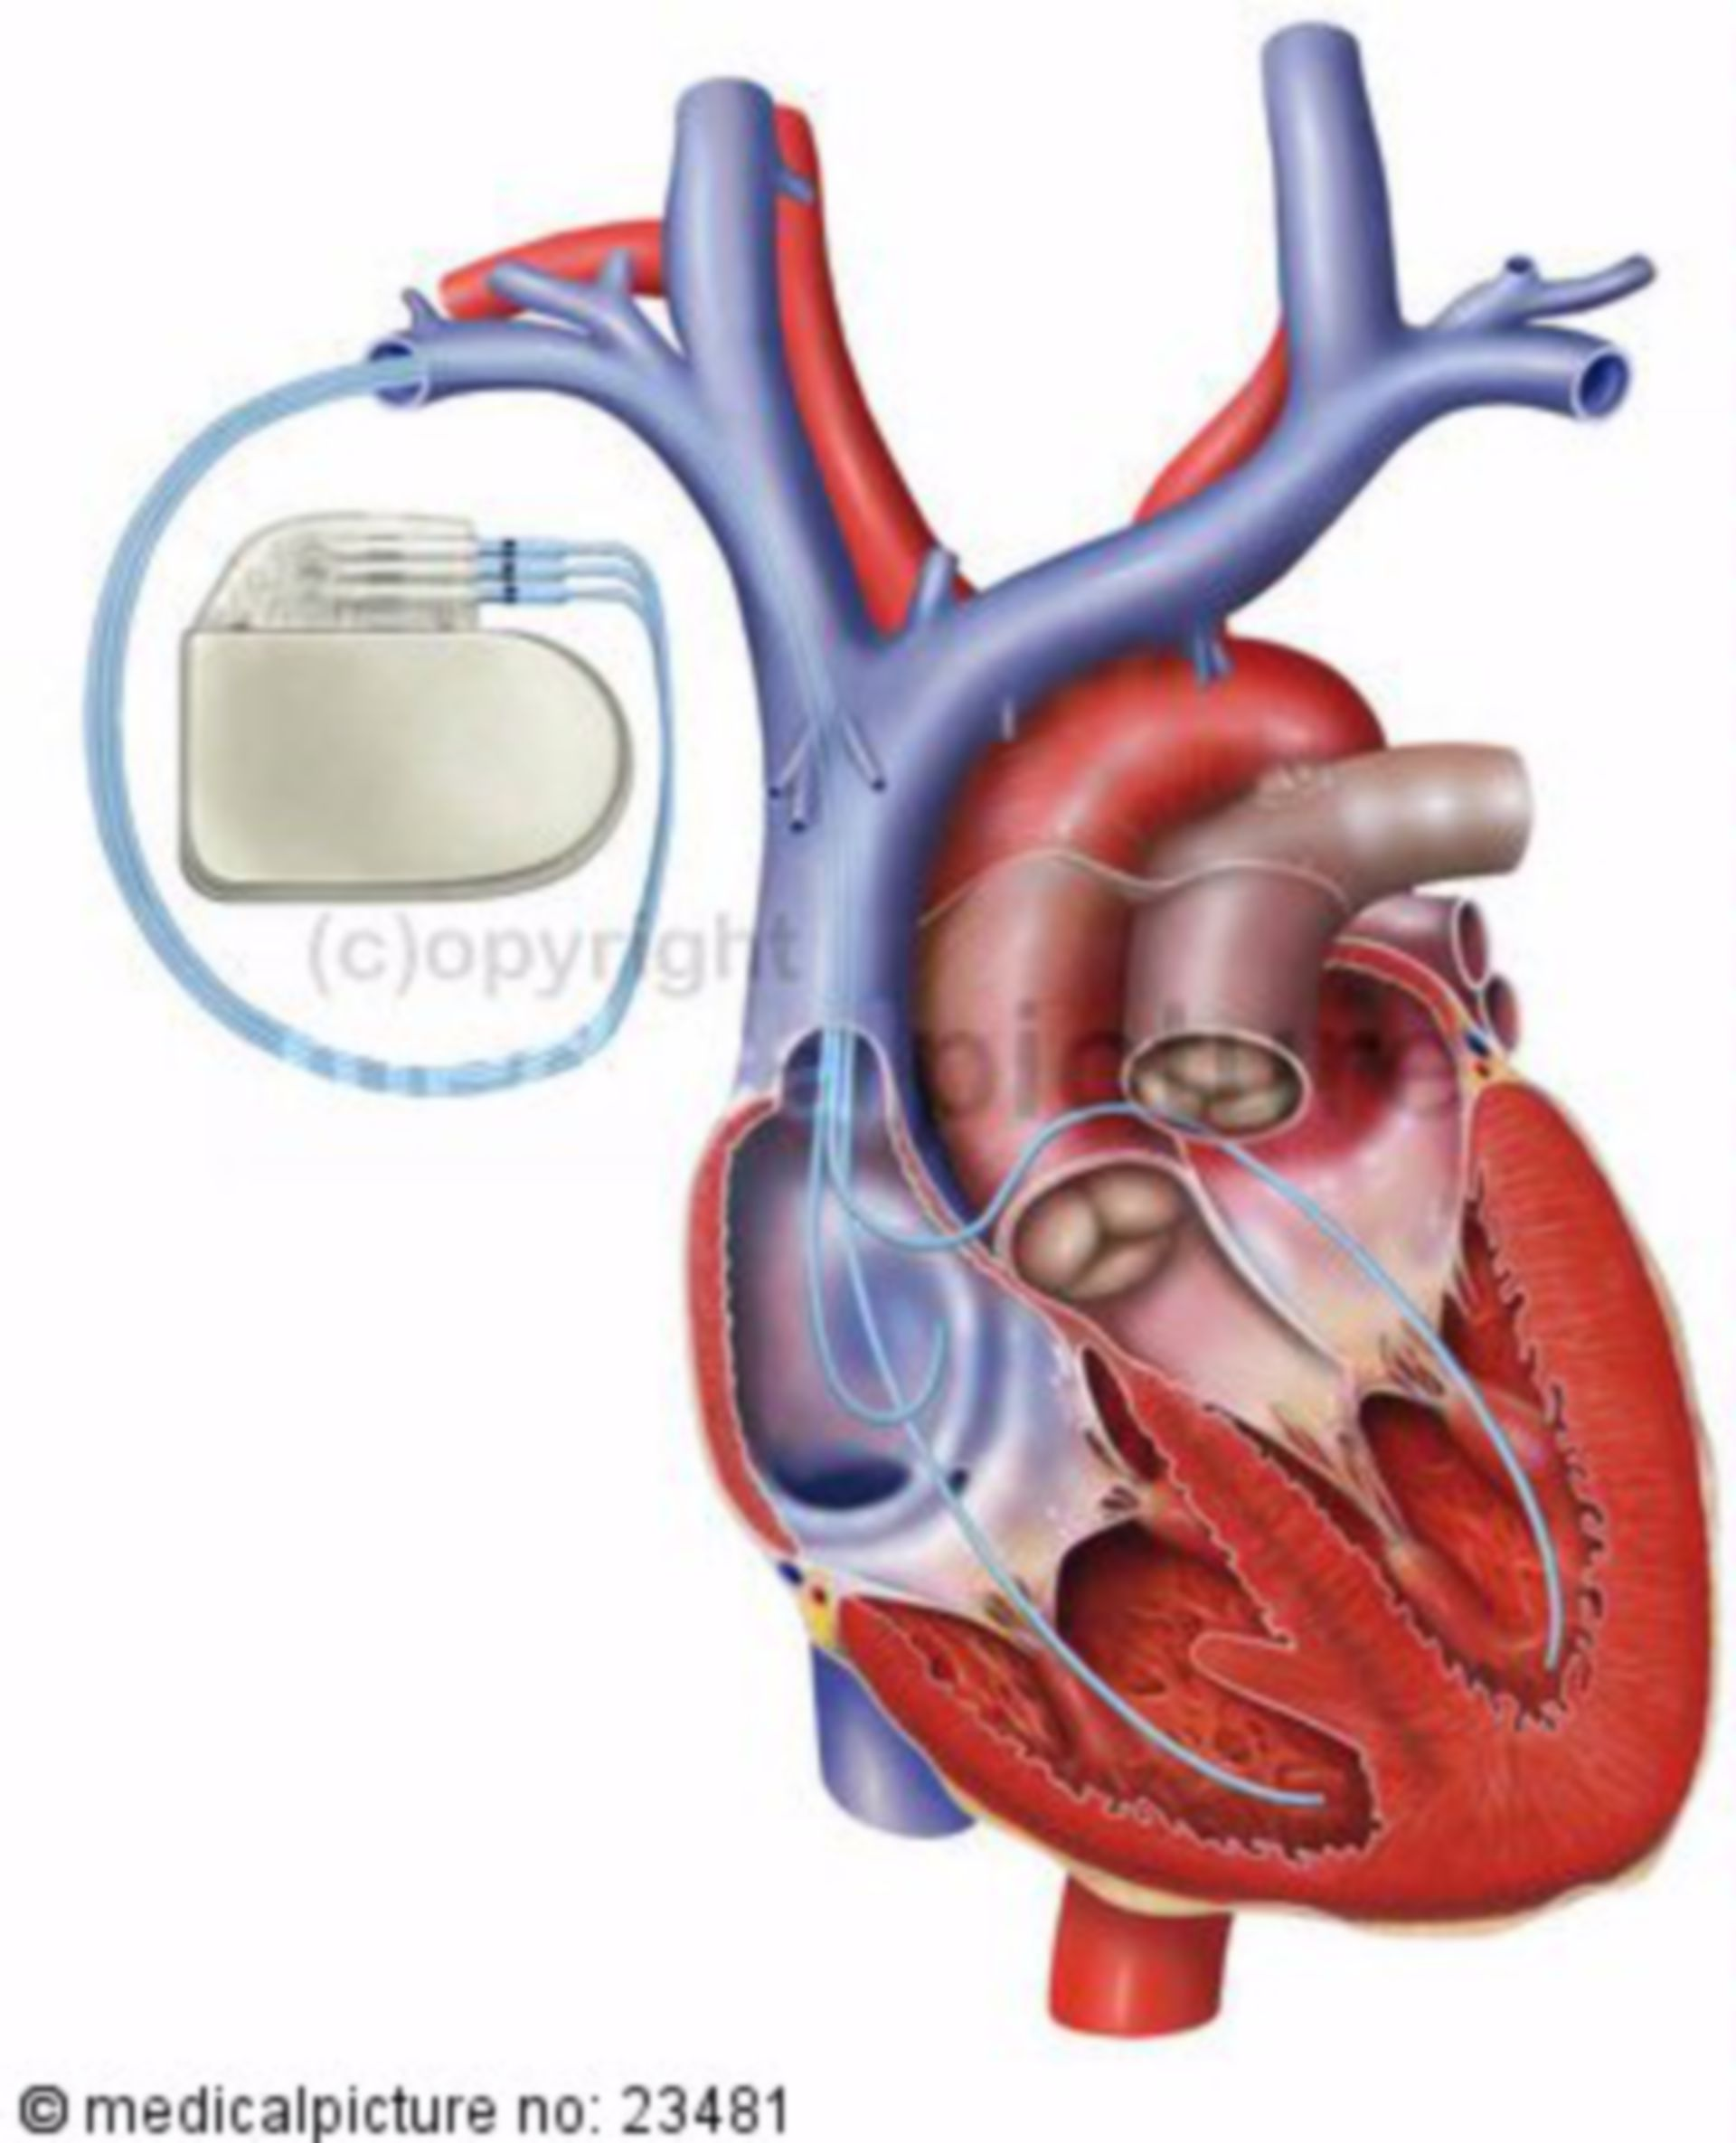 cuore con pacemaker (3)